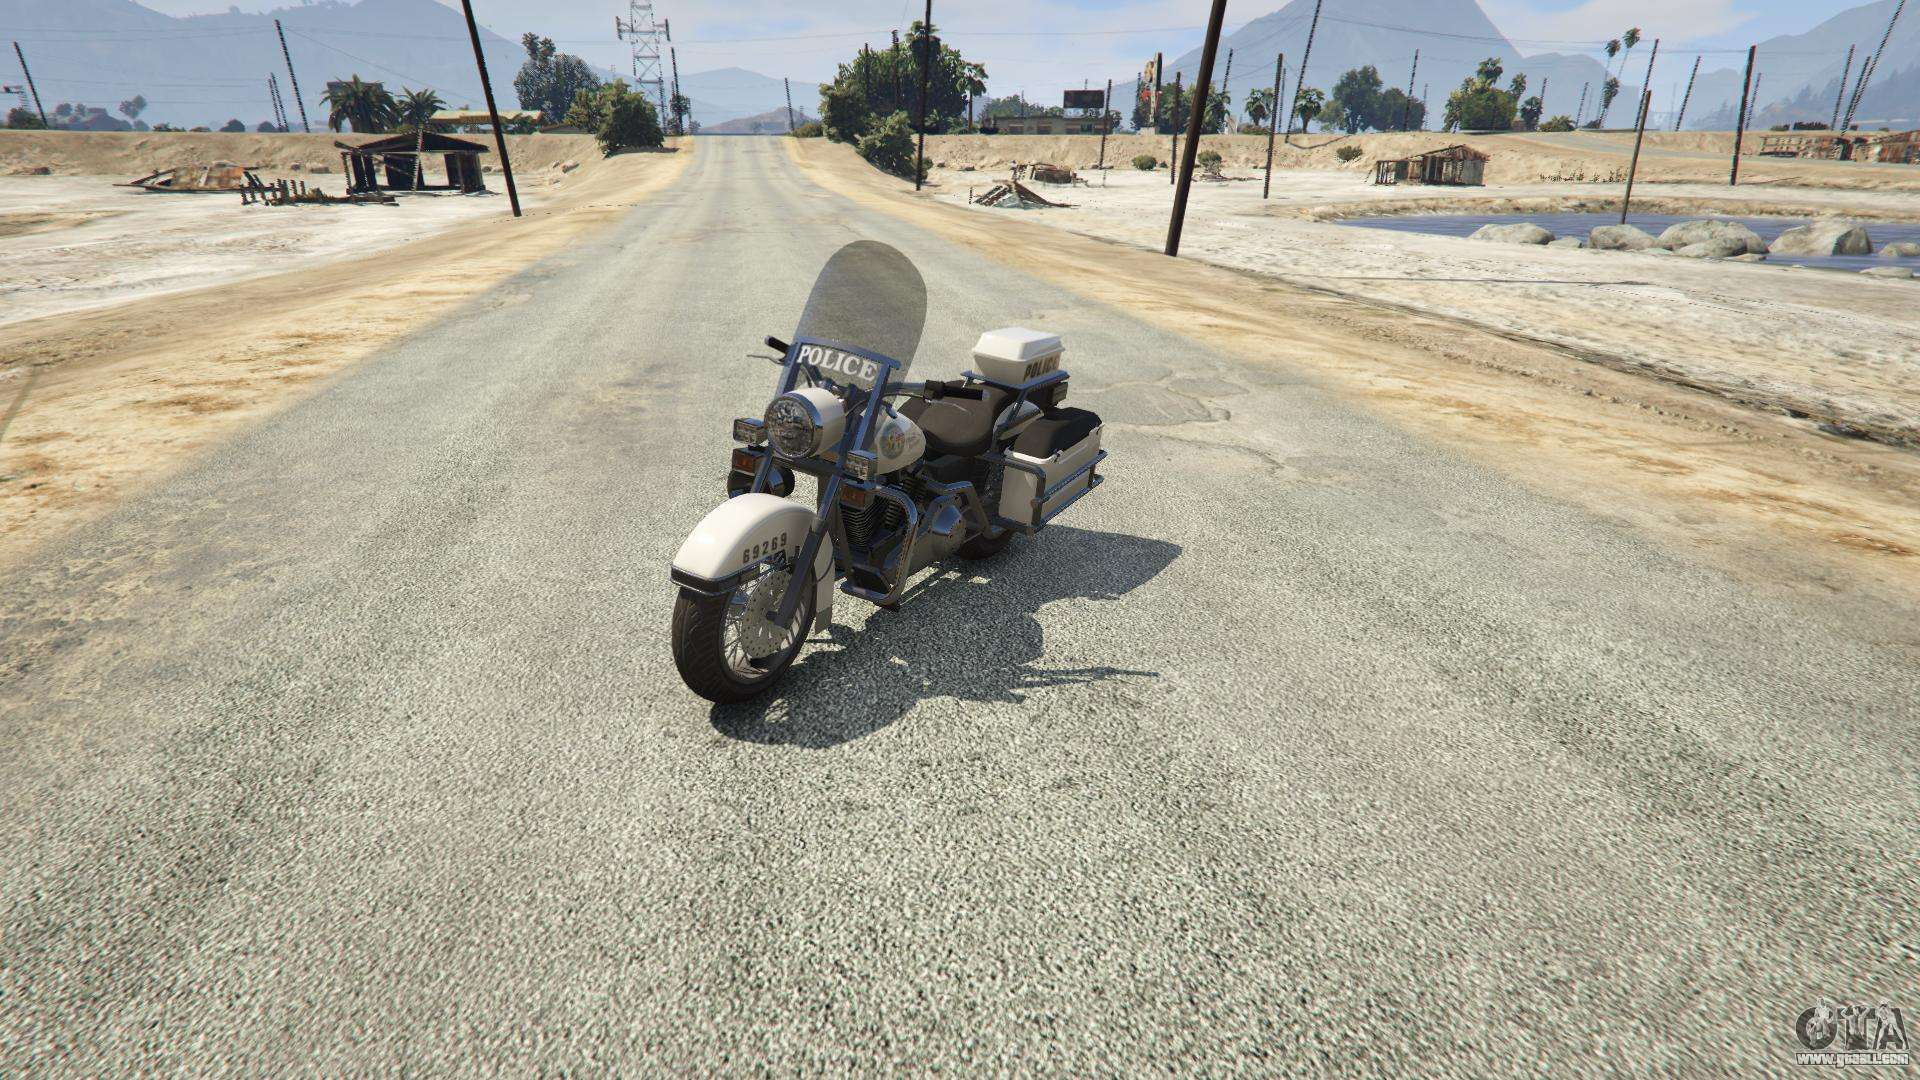 Police Bike GTA 5 - front view